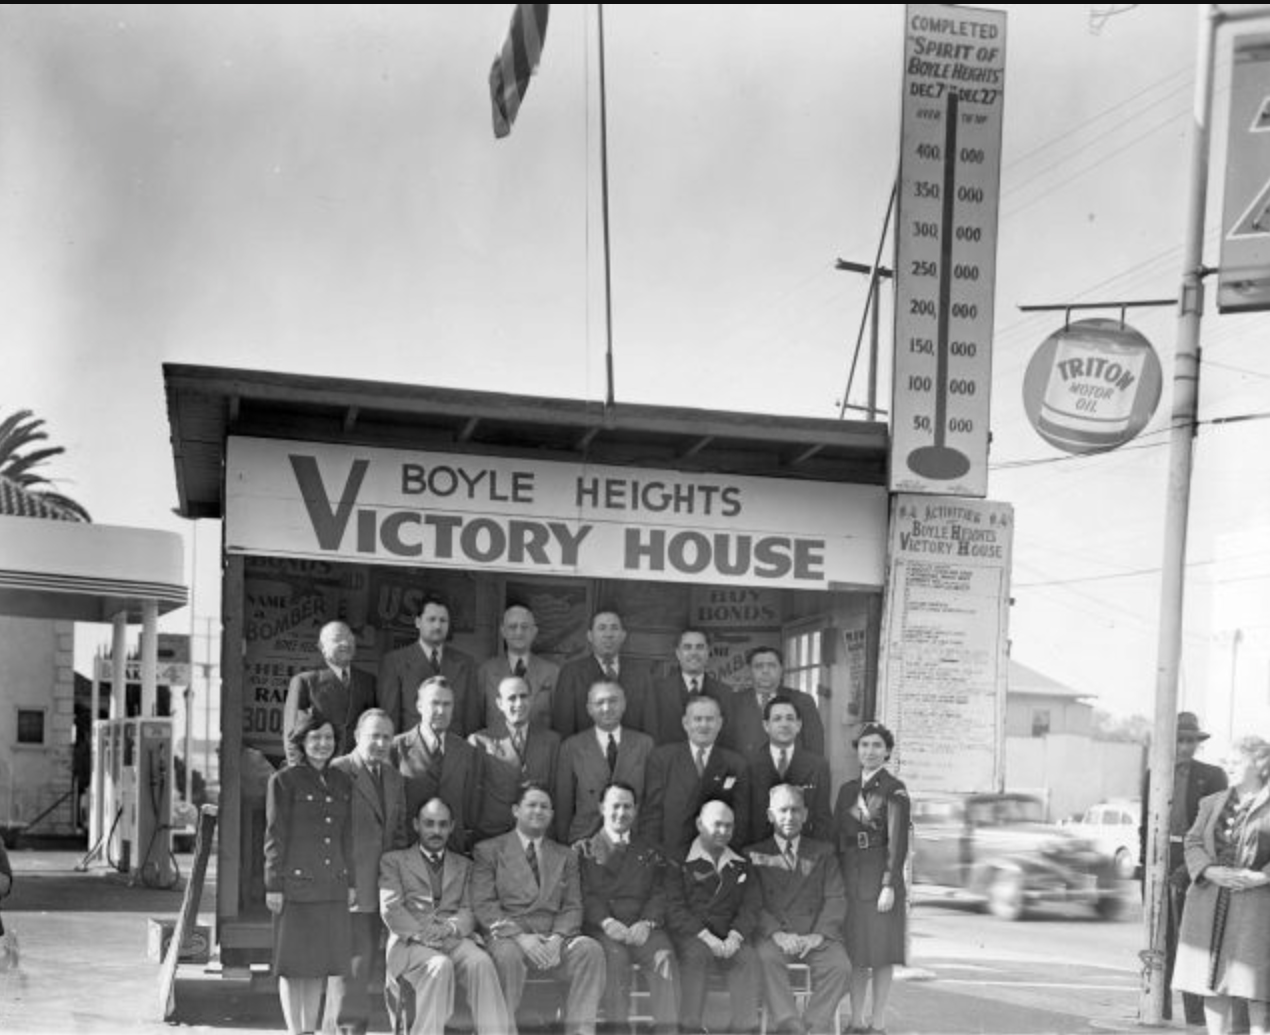 """The Boyle Heights Victory House at the corner of Brooklyn and Soto where various neighborhood organizations raised money to support the American war effort by selling war bonds. In 1942, the residents of Boyle Heights purchased so many war bonds that the American military named a plane in their honor, calling it """"The Spirit of Boyle Heights"""". Photo courtesy of Western States Jewish History/UCLA Alan D. Leve Center for Jewish Studies"""